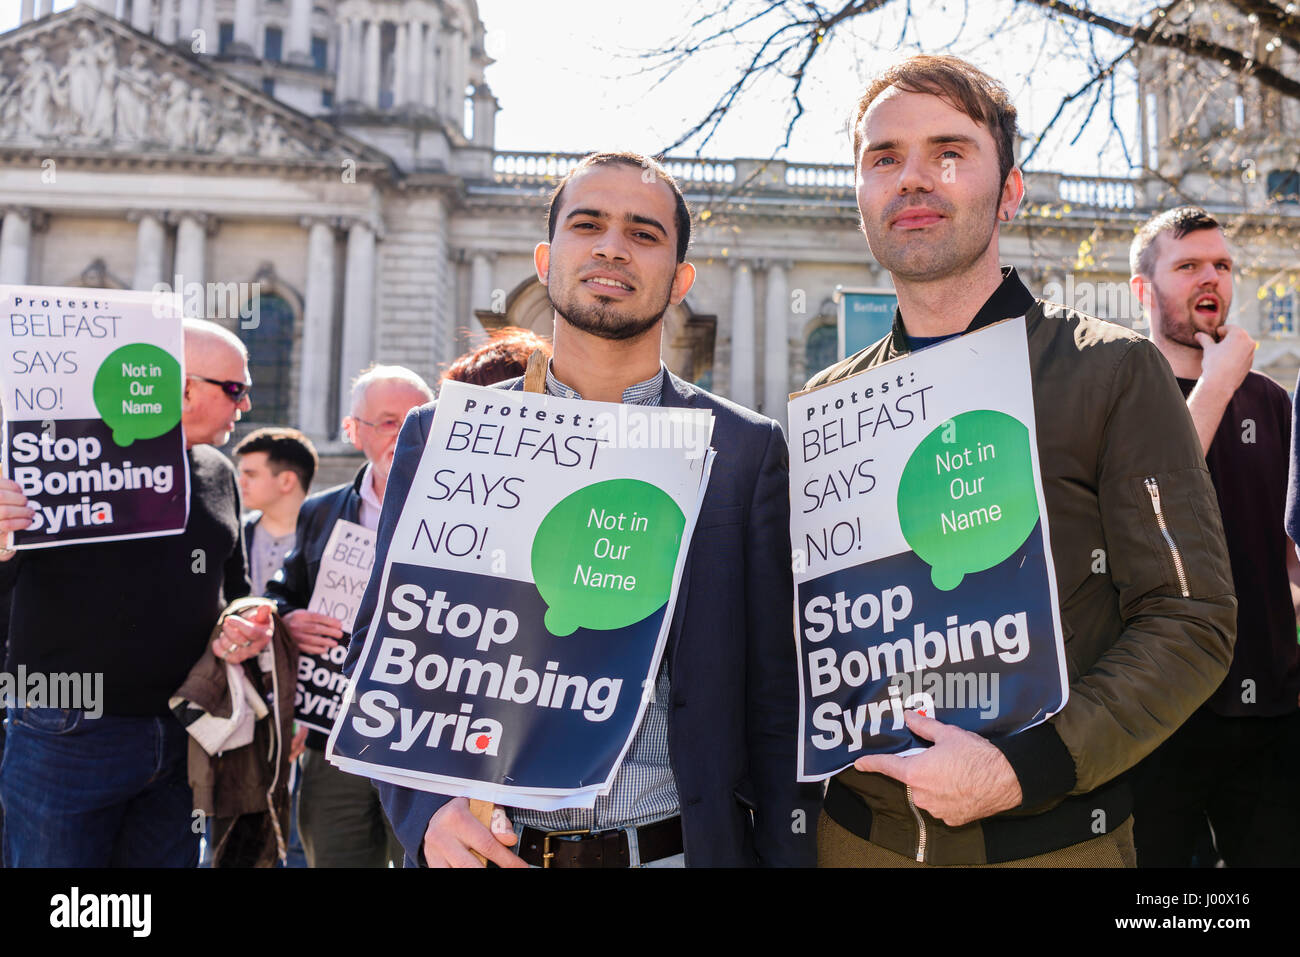 Belfast, Northern Ireland.  08 Apr 2017 - Protest against Syrian bombings by Donald Trump, Belfast - Stock Image